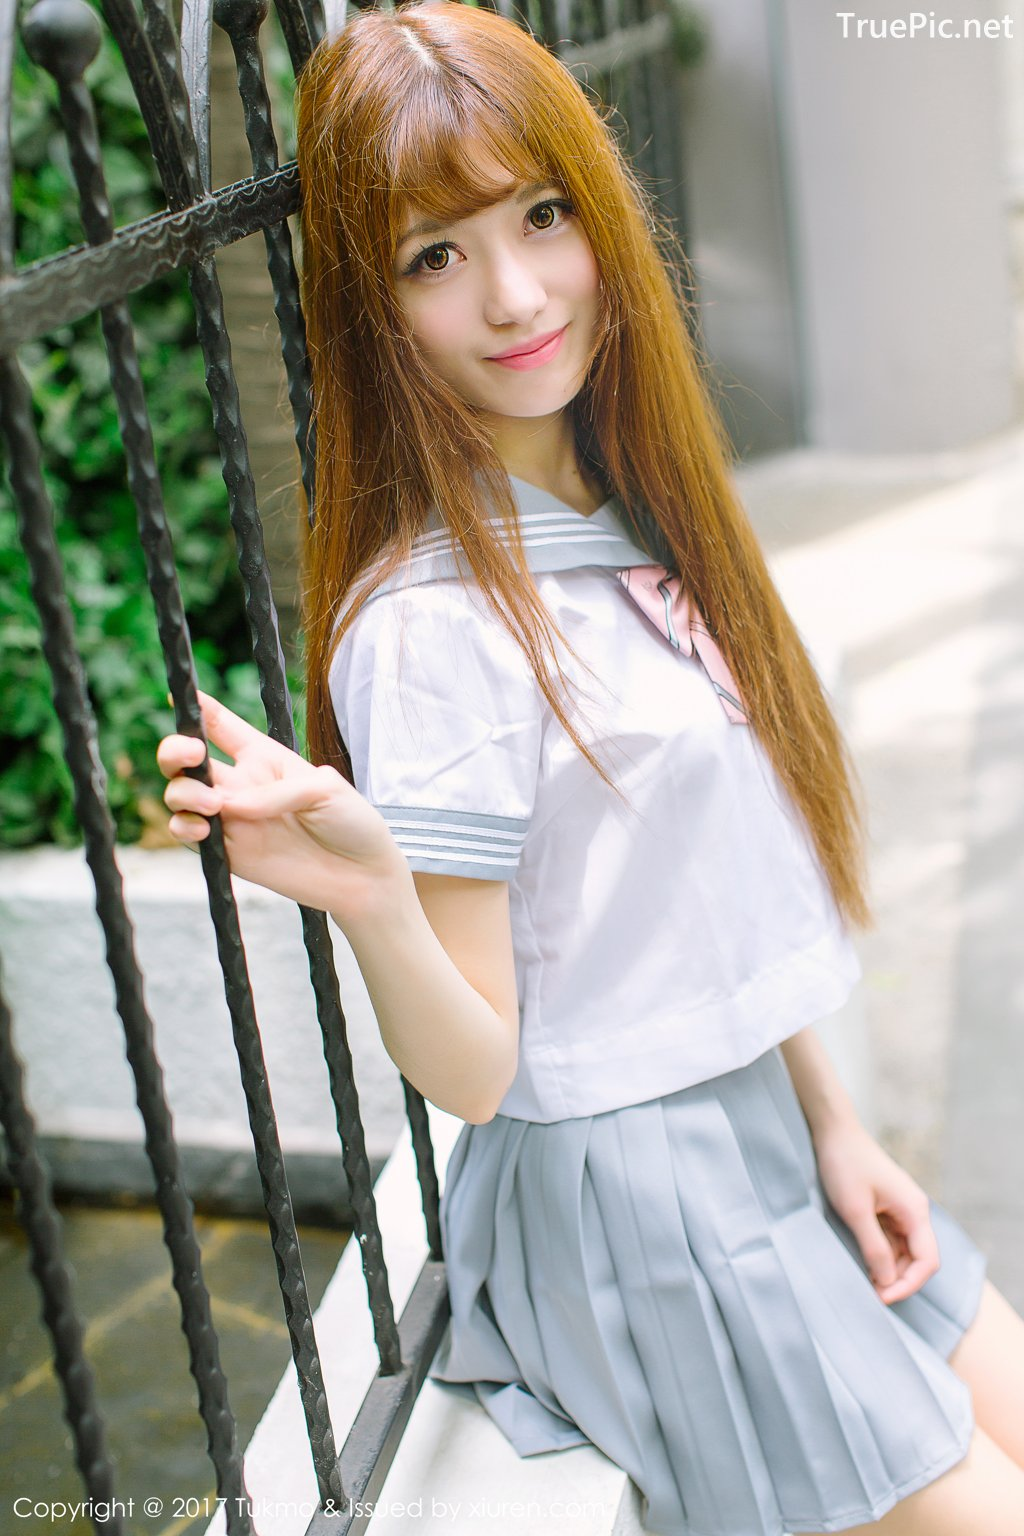 Image-Tukmo-Vol-094-Model-Zhao-Nai-Ying-赵乃莹-Lovely-School-Girl-With-Student-Uniform-TruePic.net- Picture-2